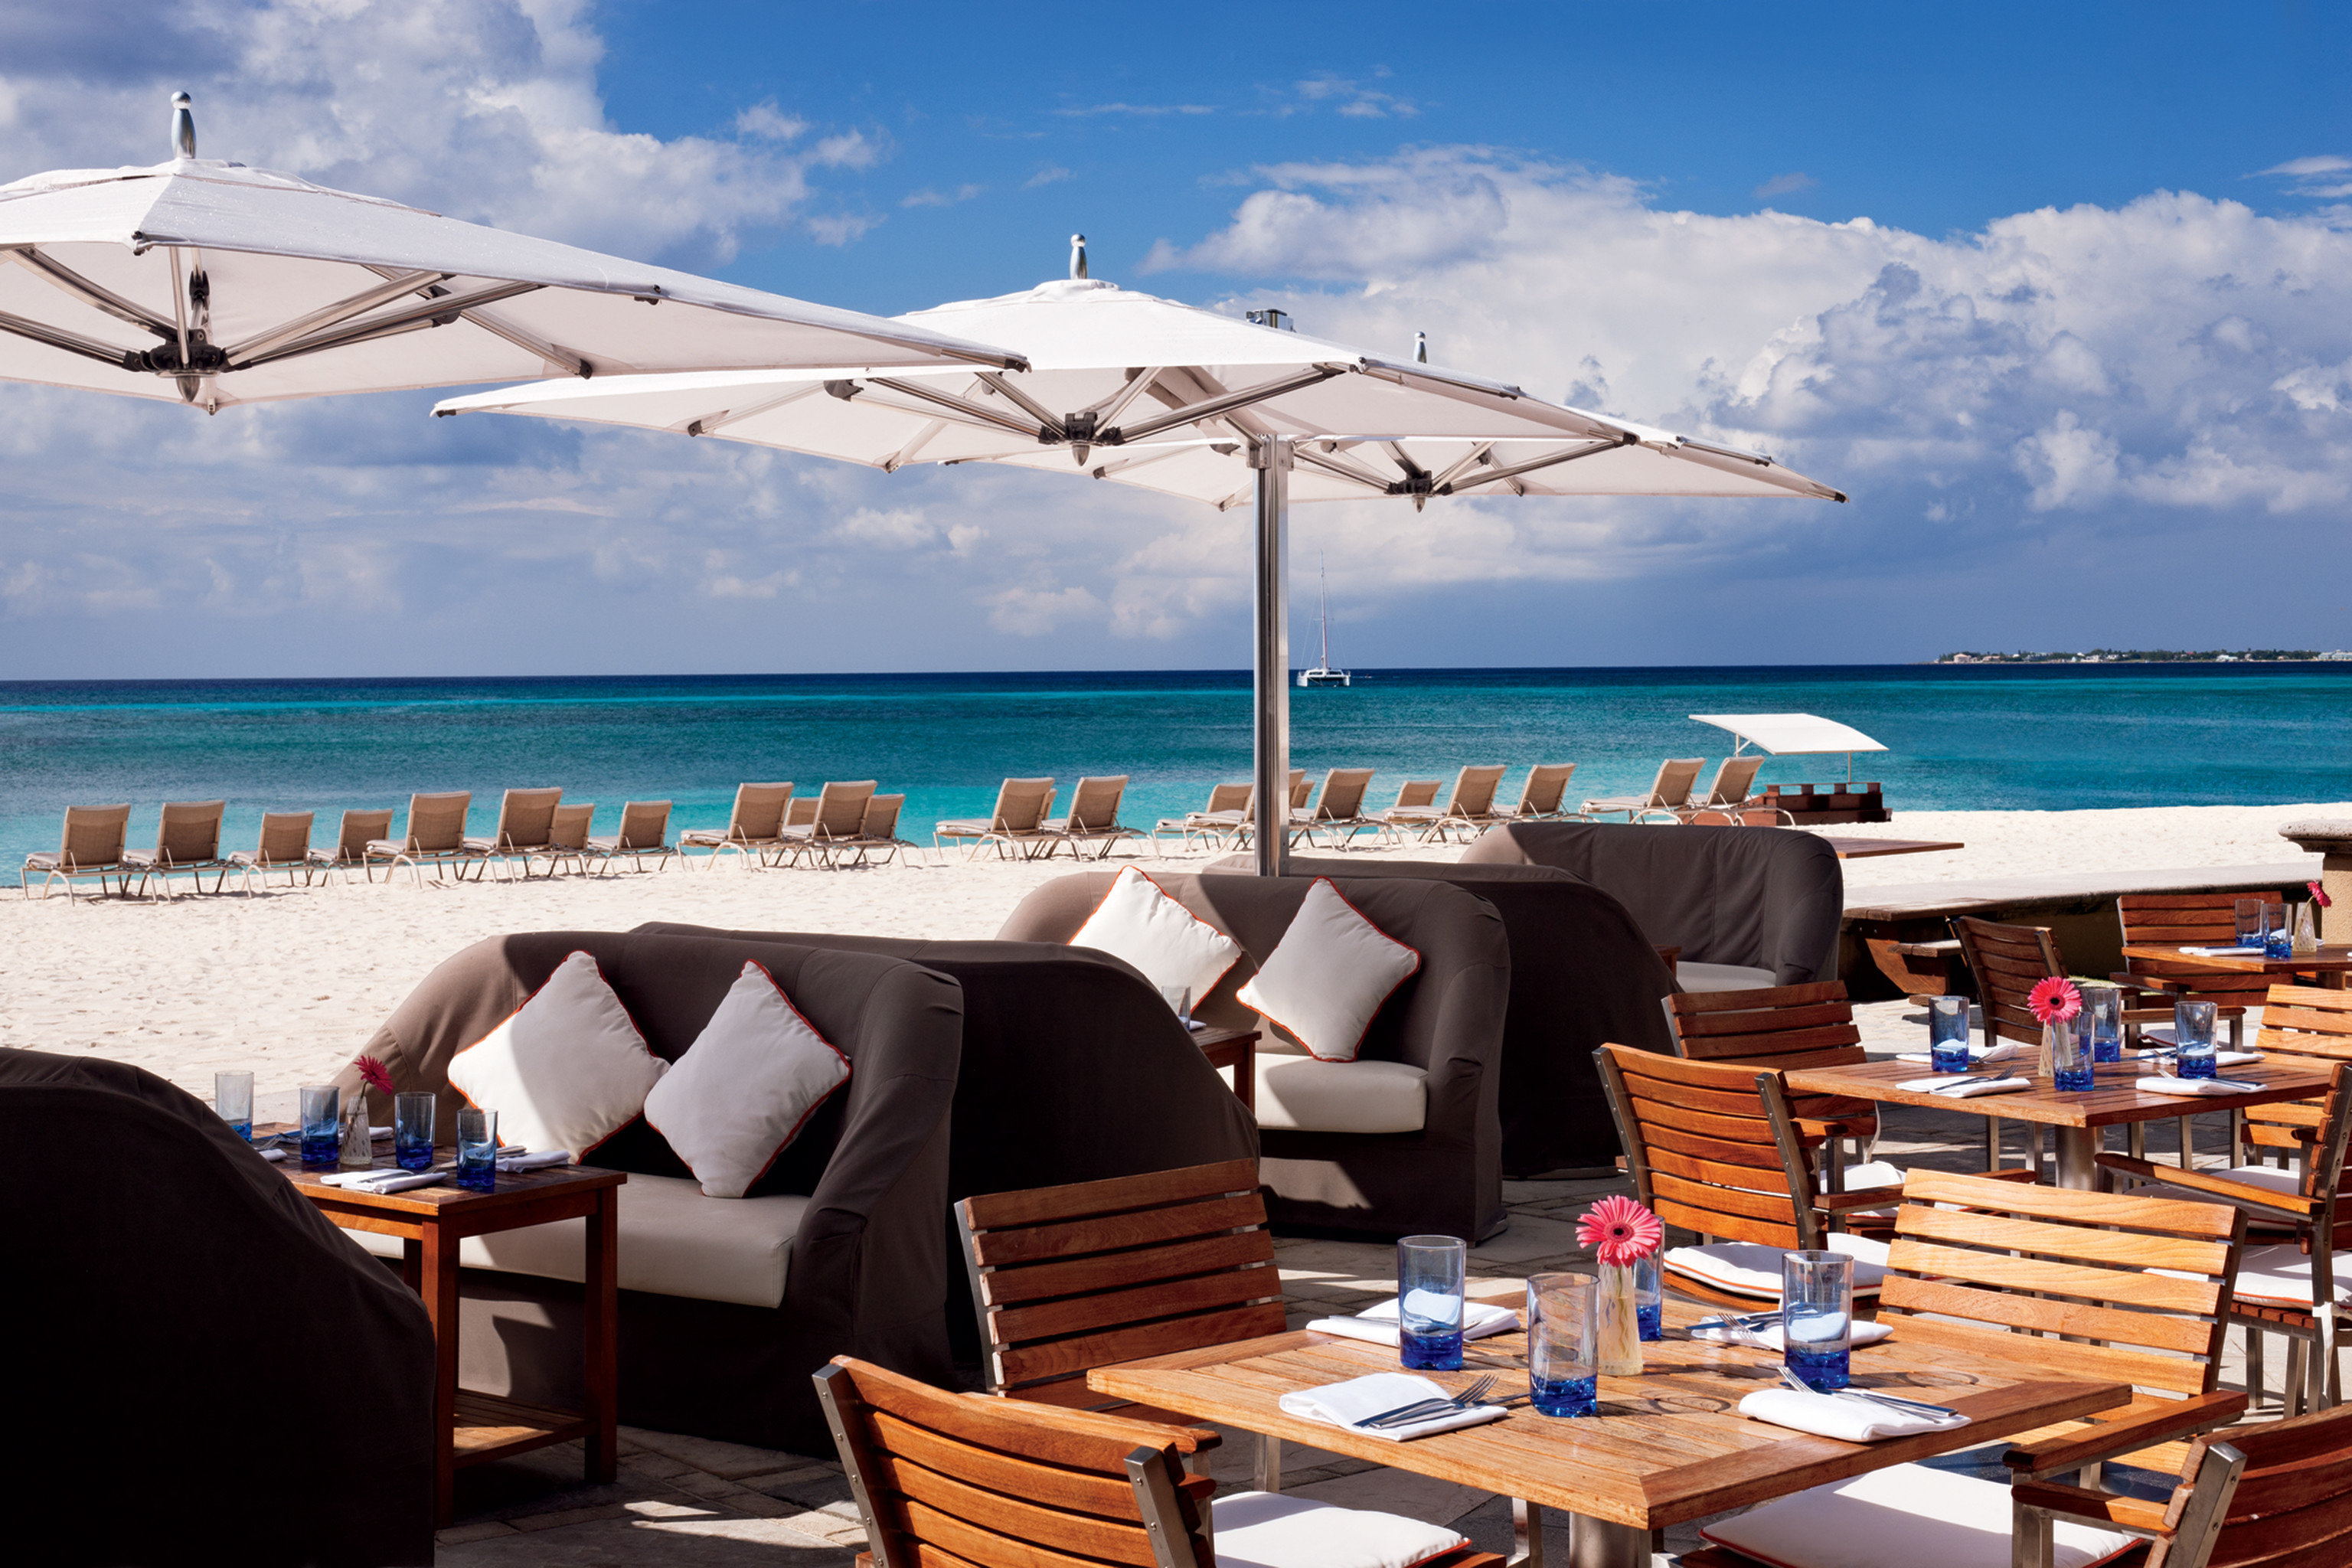 Bar Beachfront Dining Drink Eat Hip Hotels Luxury Modern sky water chair outdoor umbrella leisure passenger ship vehicle vacation Sea yacht ship caribbean Ocean Boat Resort marina luxury yacht dock watercraft set several shore furniture day